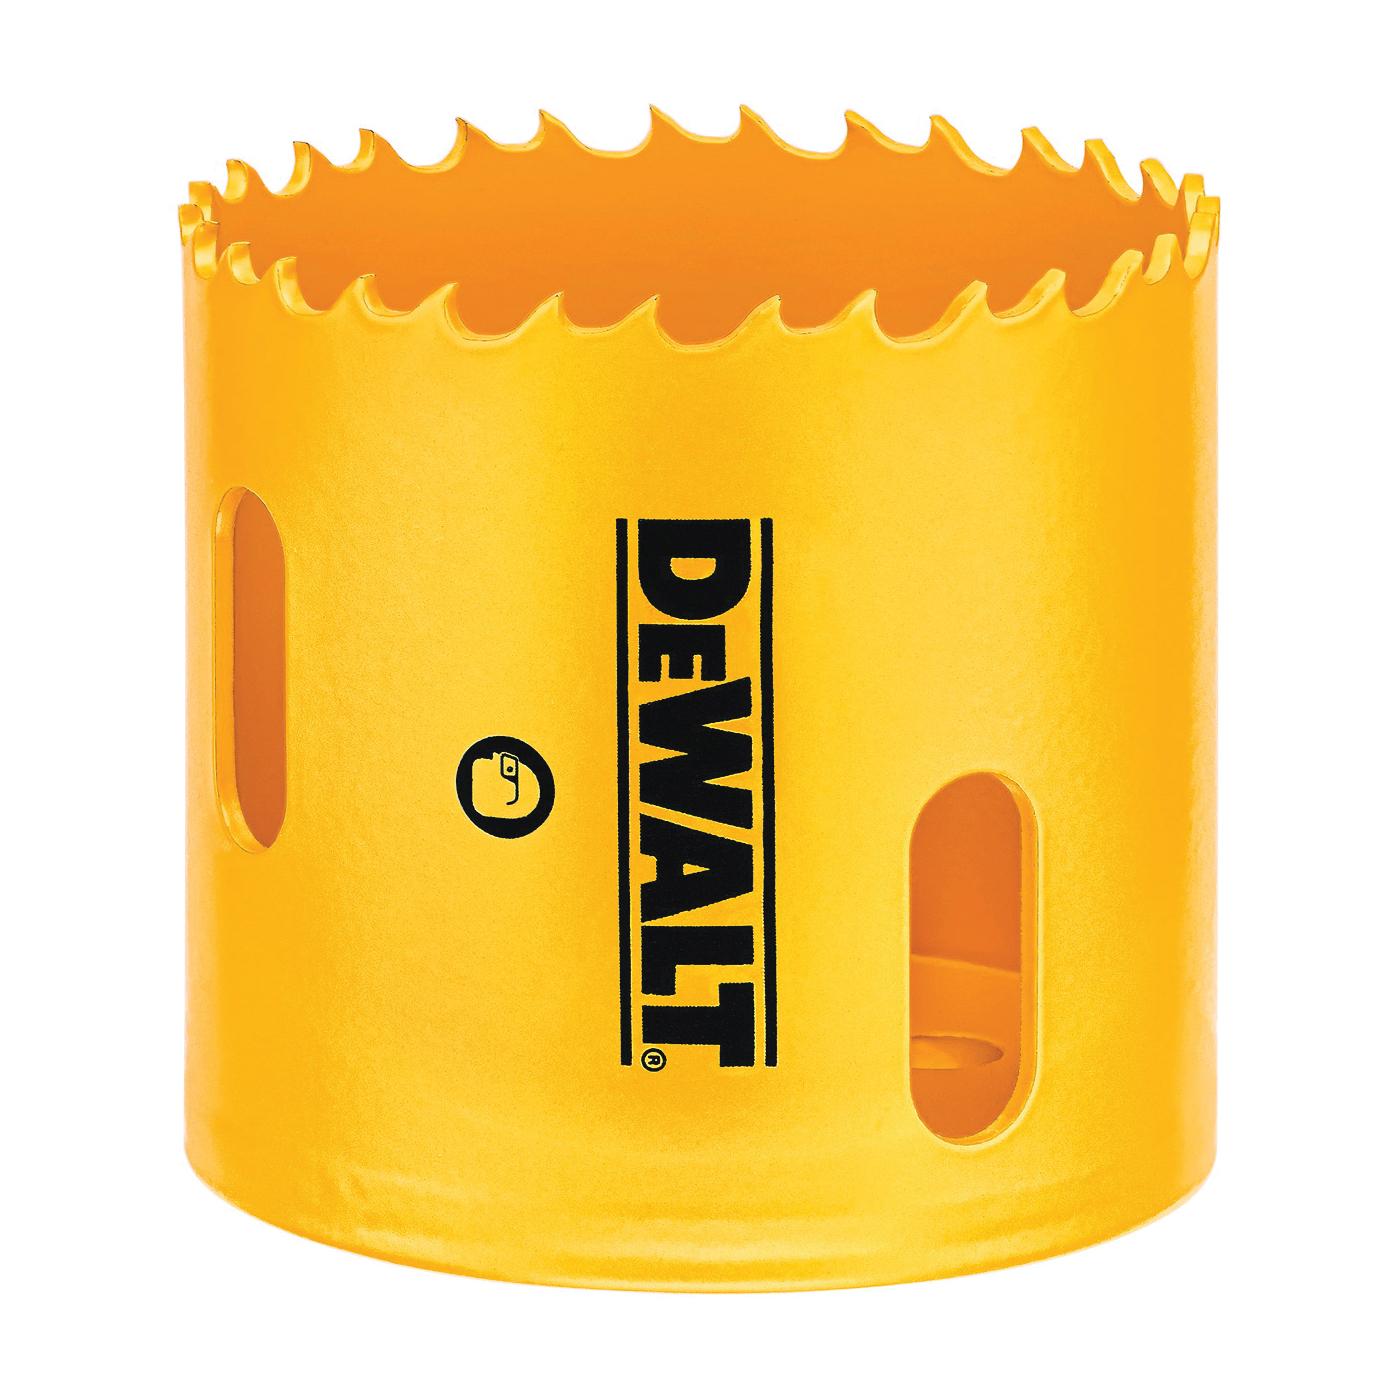 Picture of DeWALT D180032 Hole Saw, 2 in Dia, 1-13/16 in D Cutting, 5/8-18 Arbor, 4/5 TPI, HSS Cutting Edge